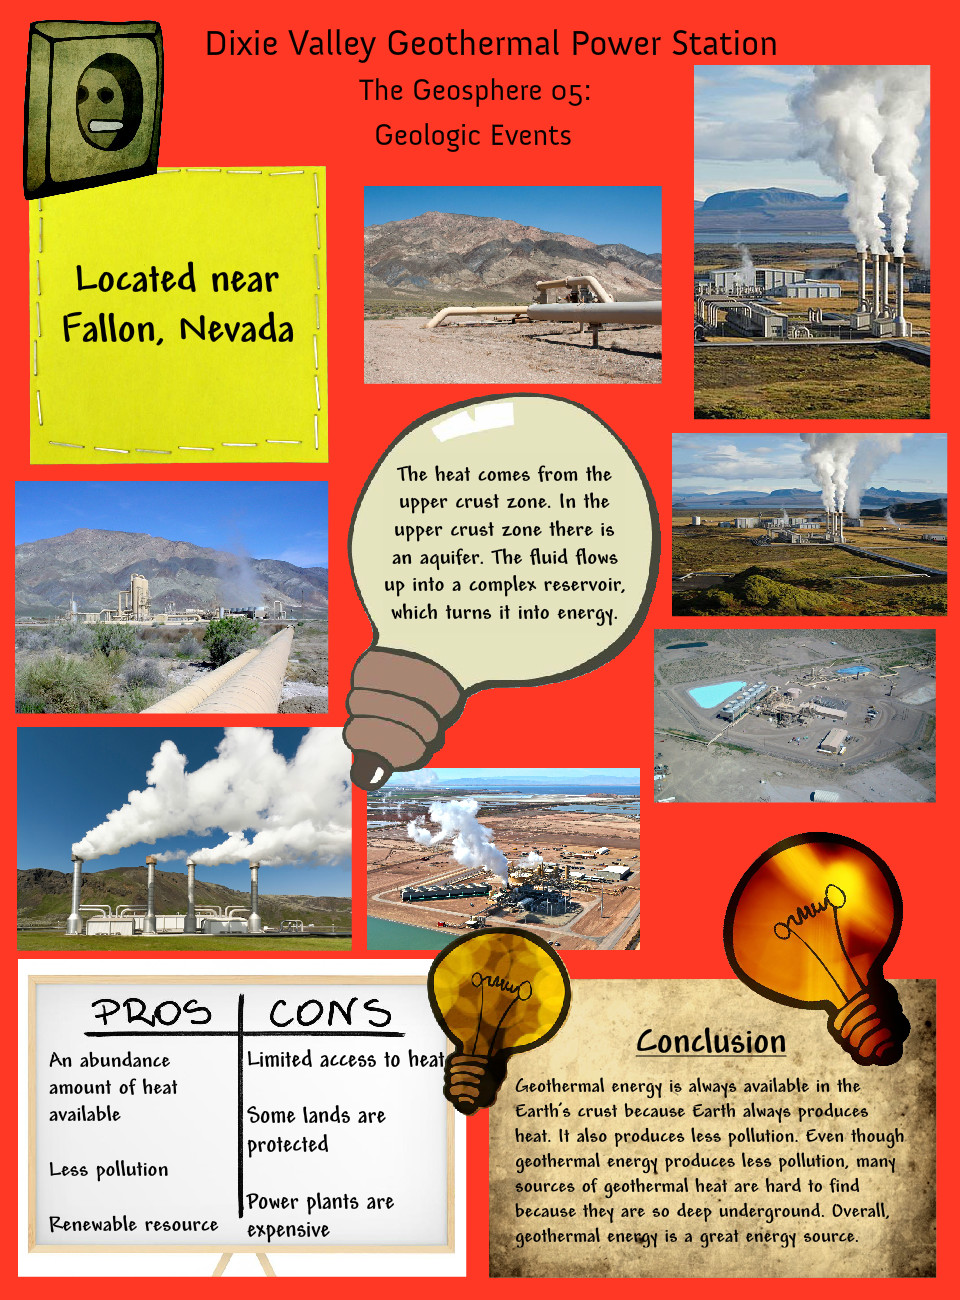 Dixie valley geothermal power station